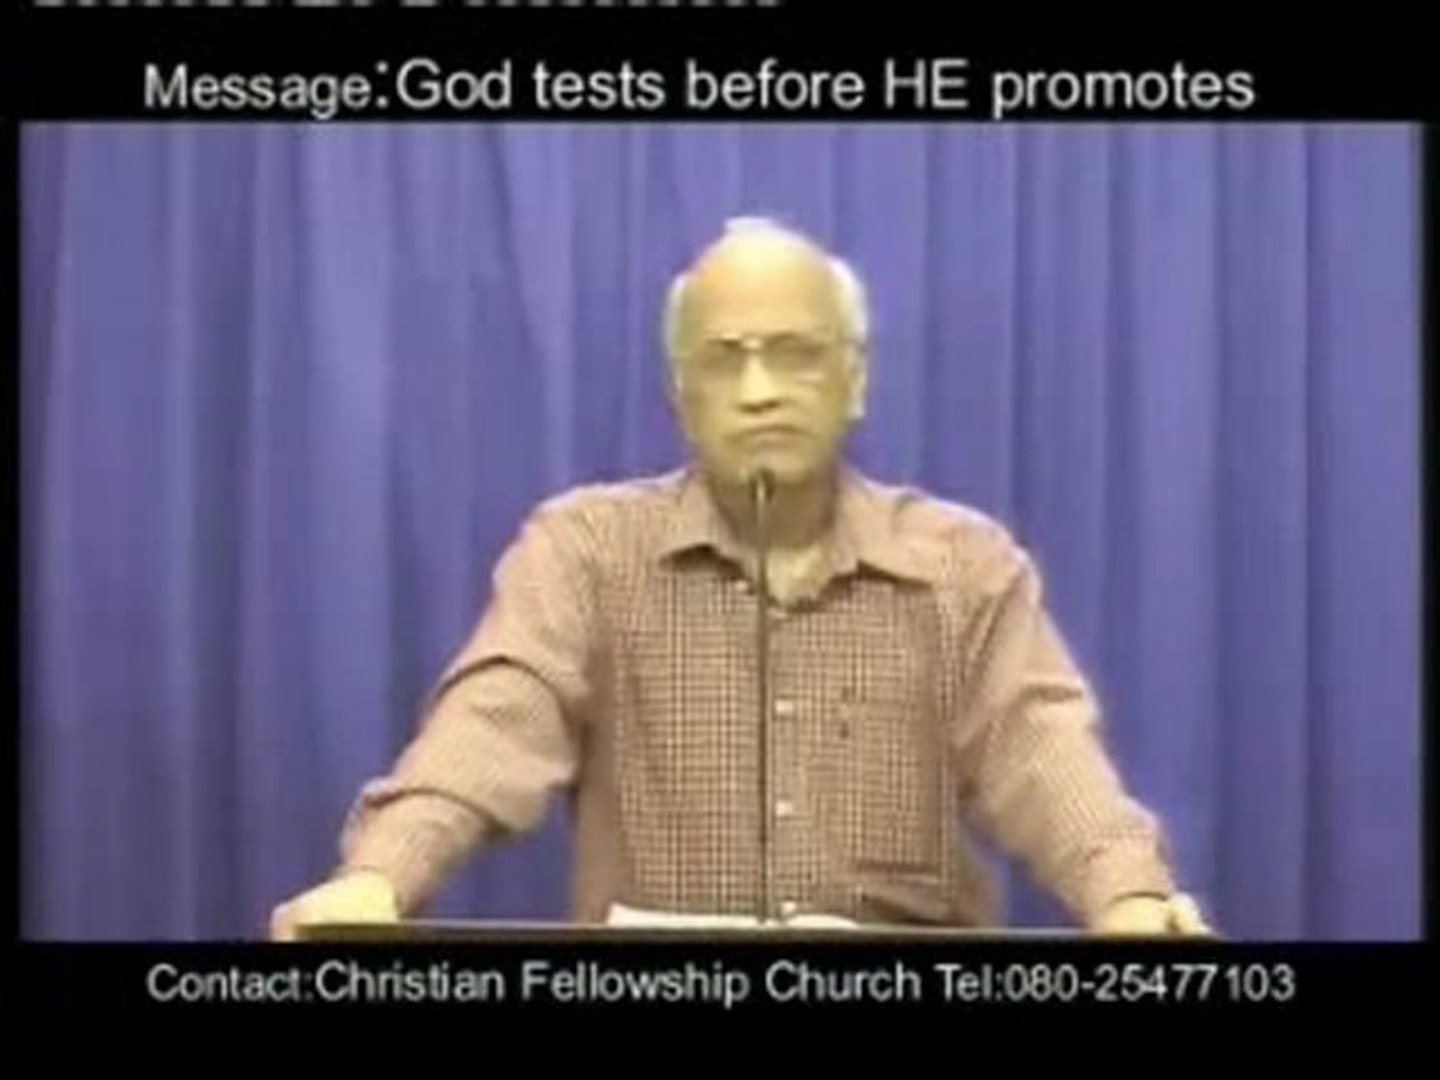 God Tests Before He Promotes by Zac Poonen - Part 4